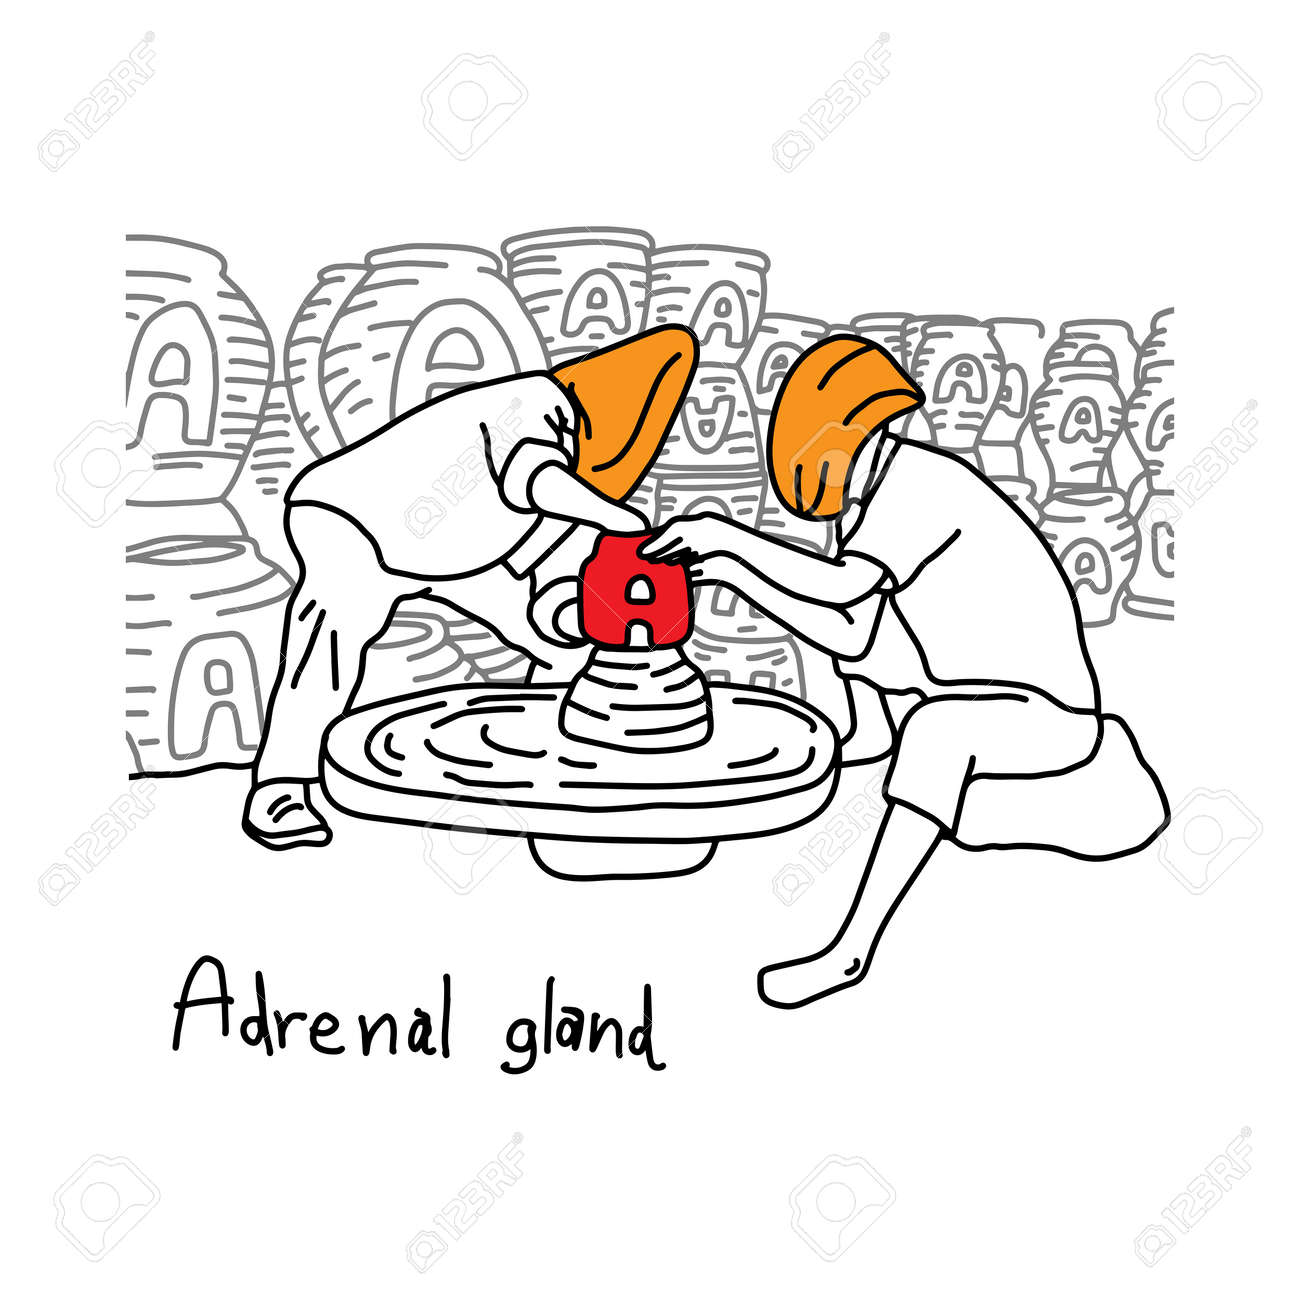 Metaphor Function Of Adrenal Gland Is To Produce Adrenaline